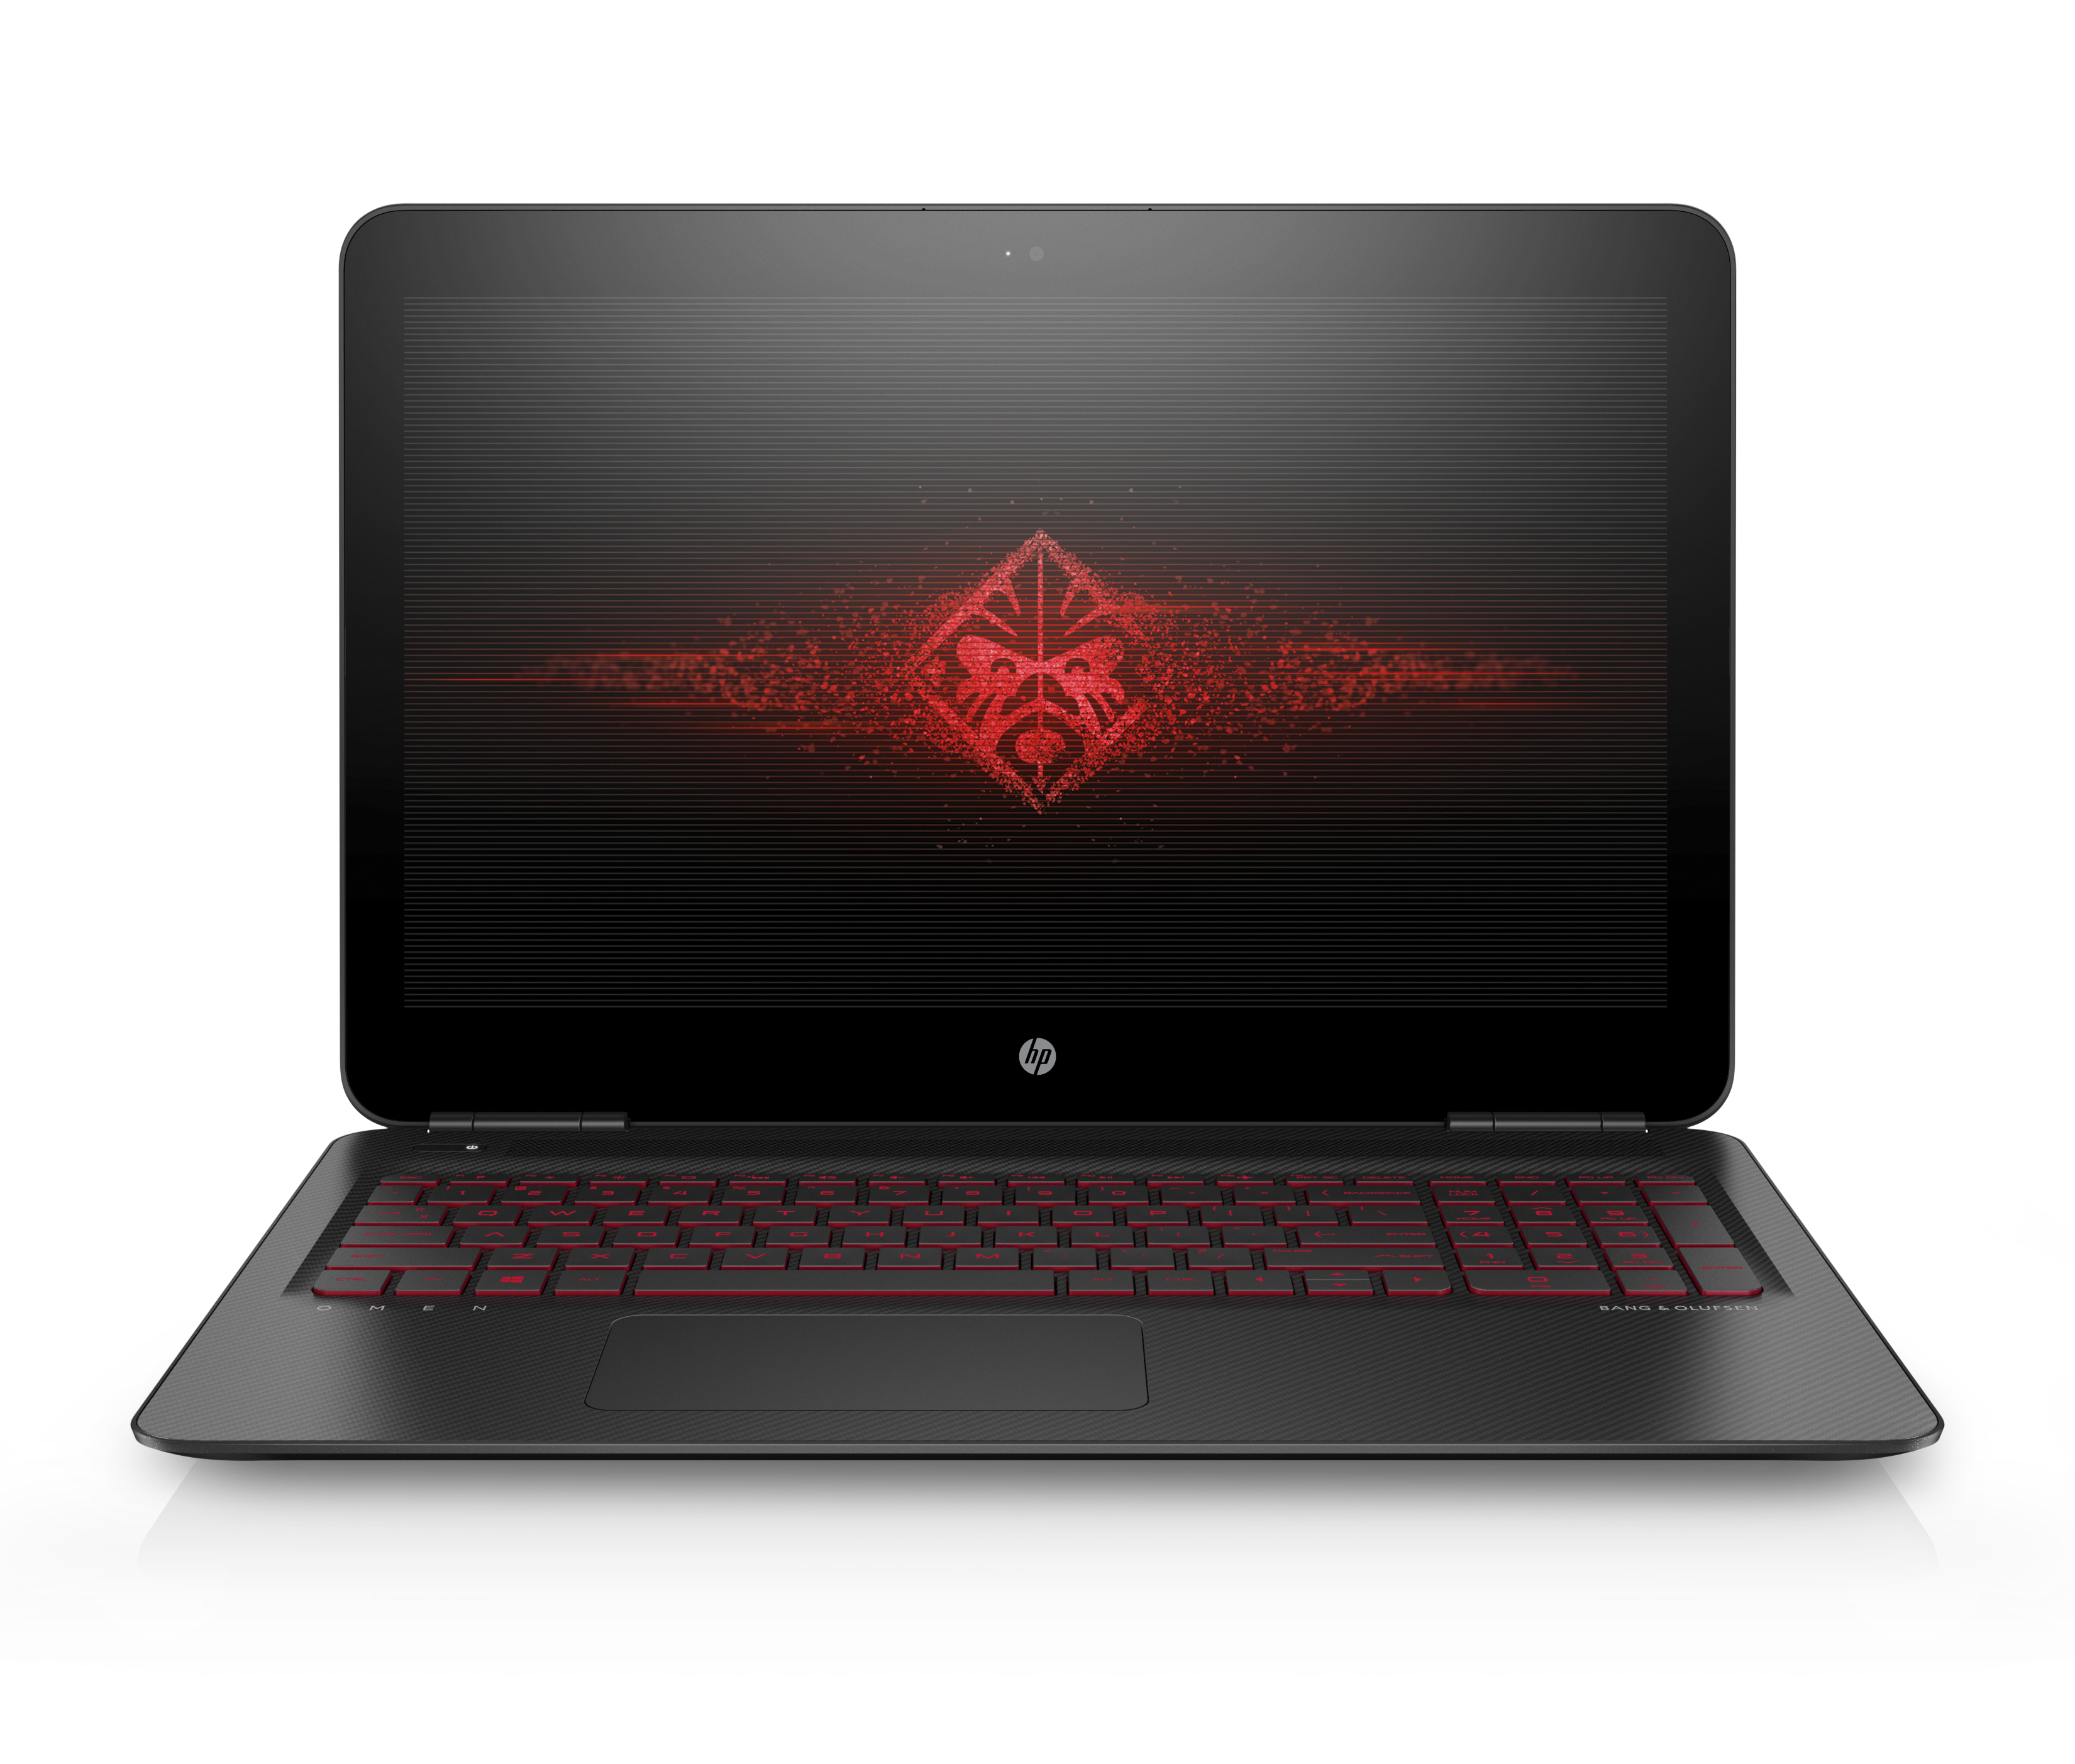 HP launches new Omen line of gaming laptops desktops and accessories The Verge